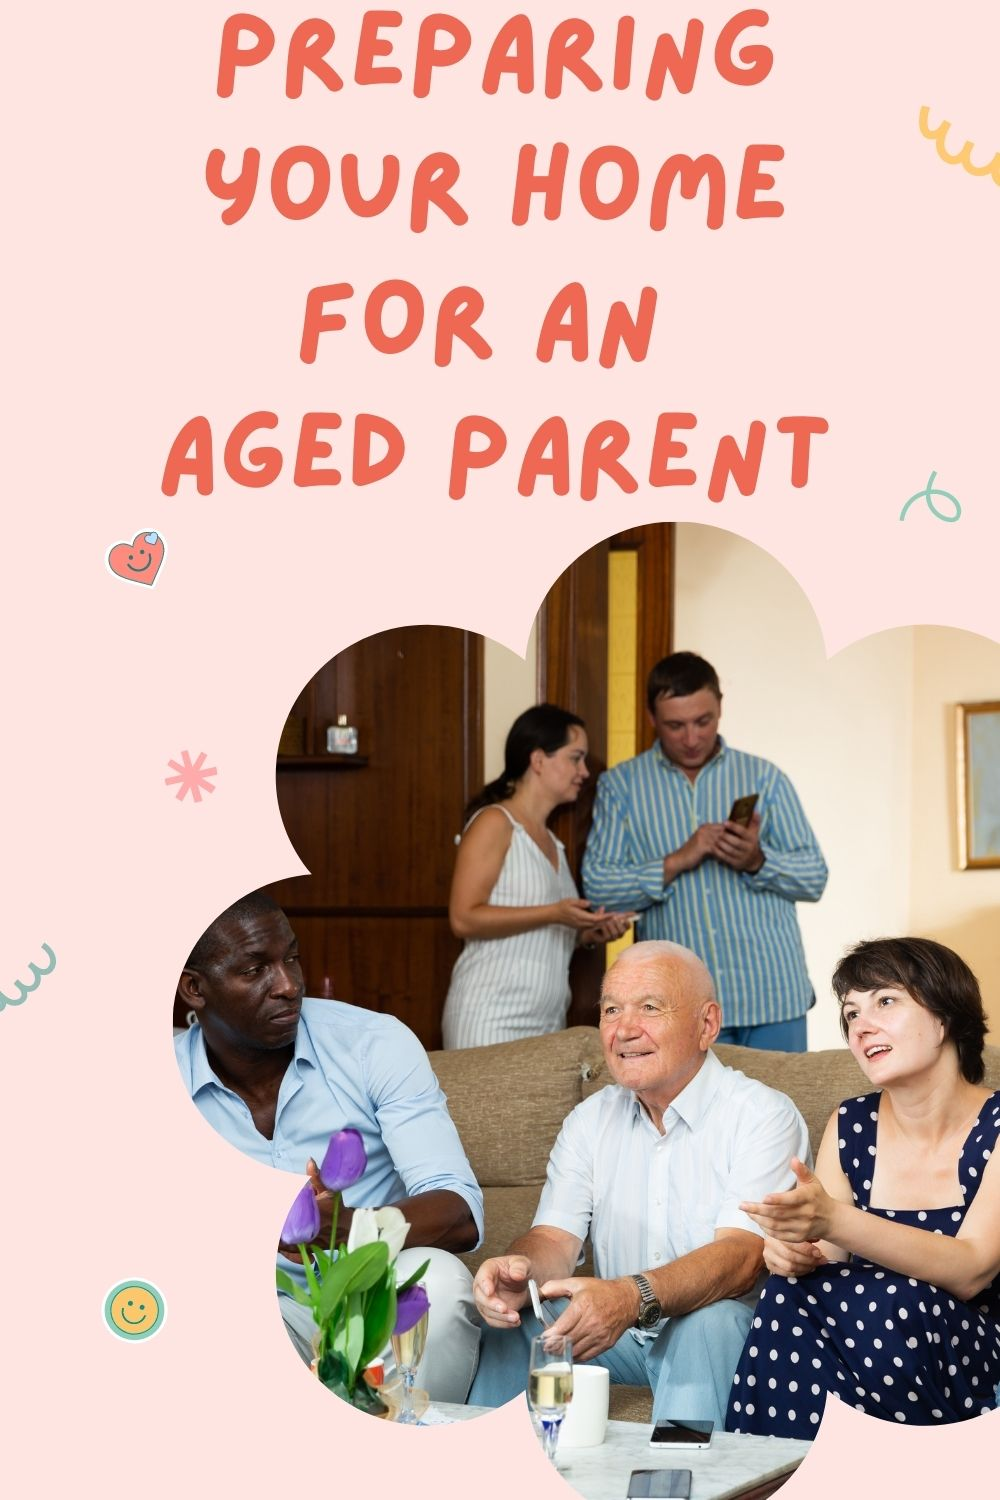 Preparing Your Home for an Aged Parent